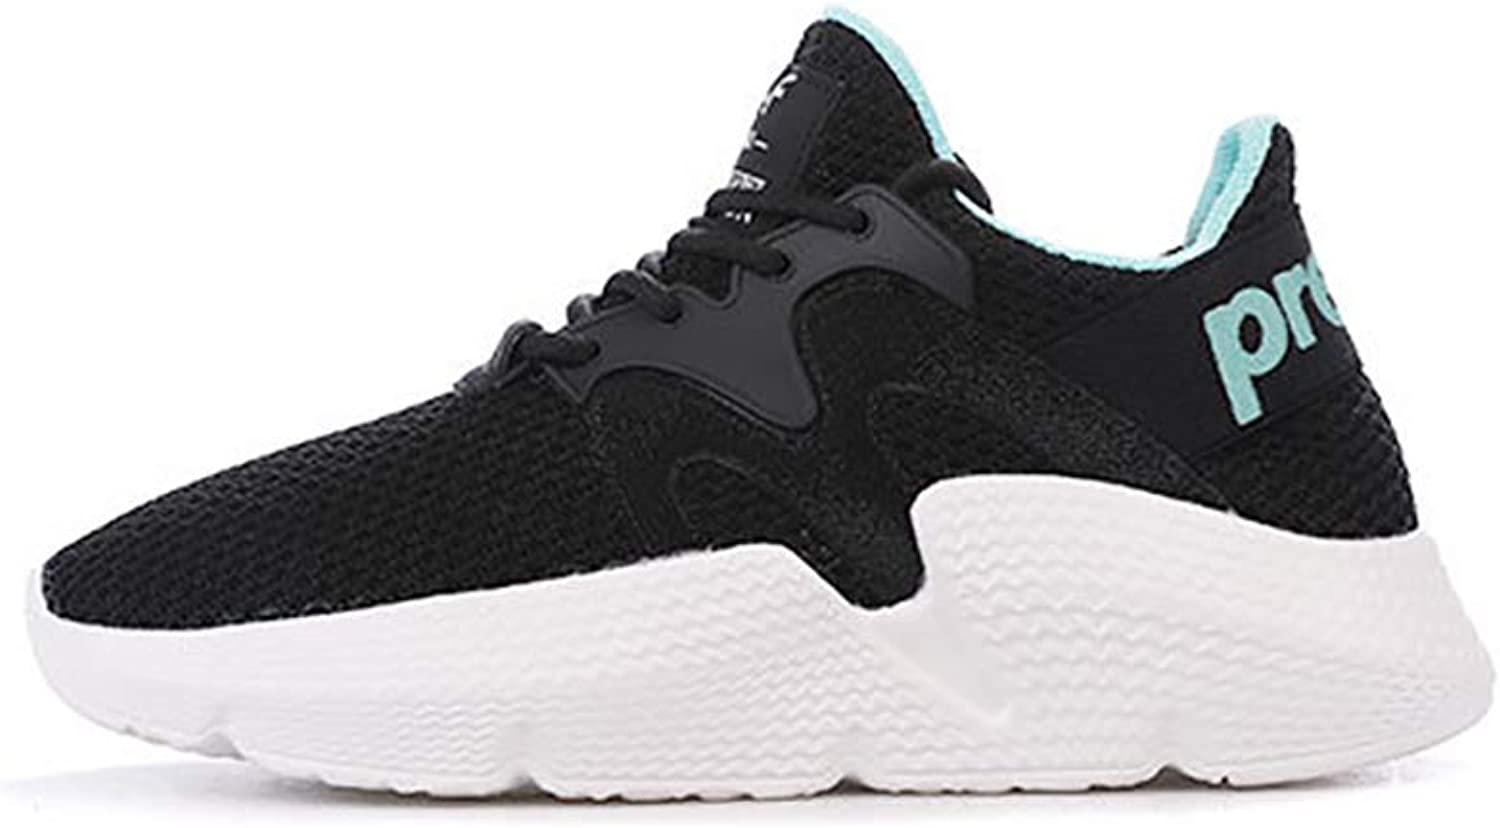 Women's Sneakers,Comfort Damping Trainers shoes,Light Breathable Walking Gym shoes Athletic Sneakers,Spring Summer Autumn Fall Winter Camping Walking Park (color   Black, Size   36)